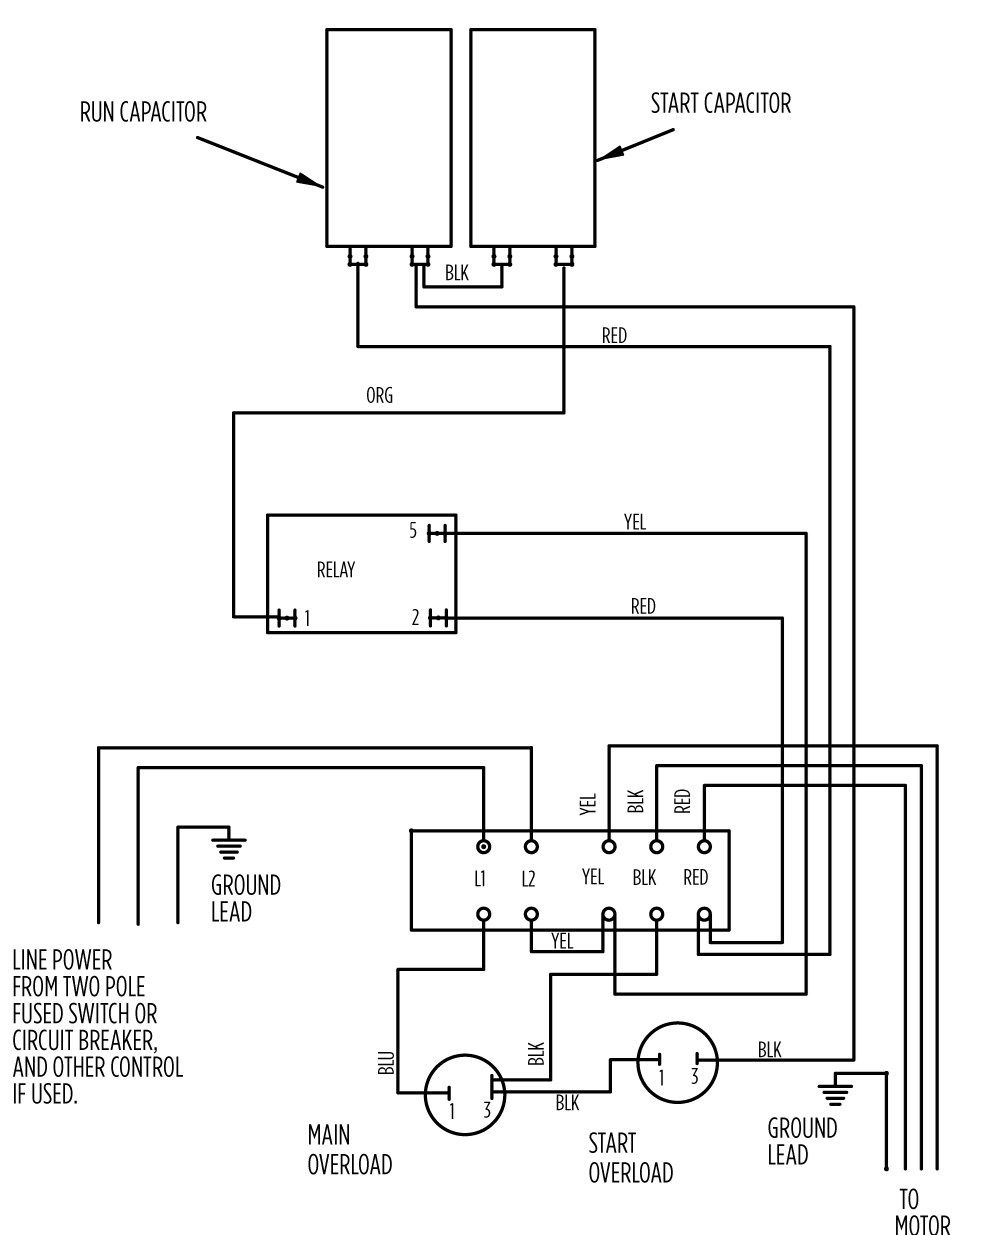 Wiring Diagram For 220 Volt Submersible Pump Bookingritzcarlton Info Submersible Well Pump Well Pump Submersible Pump